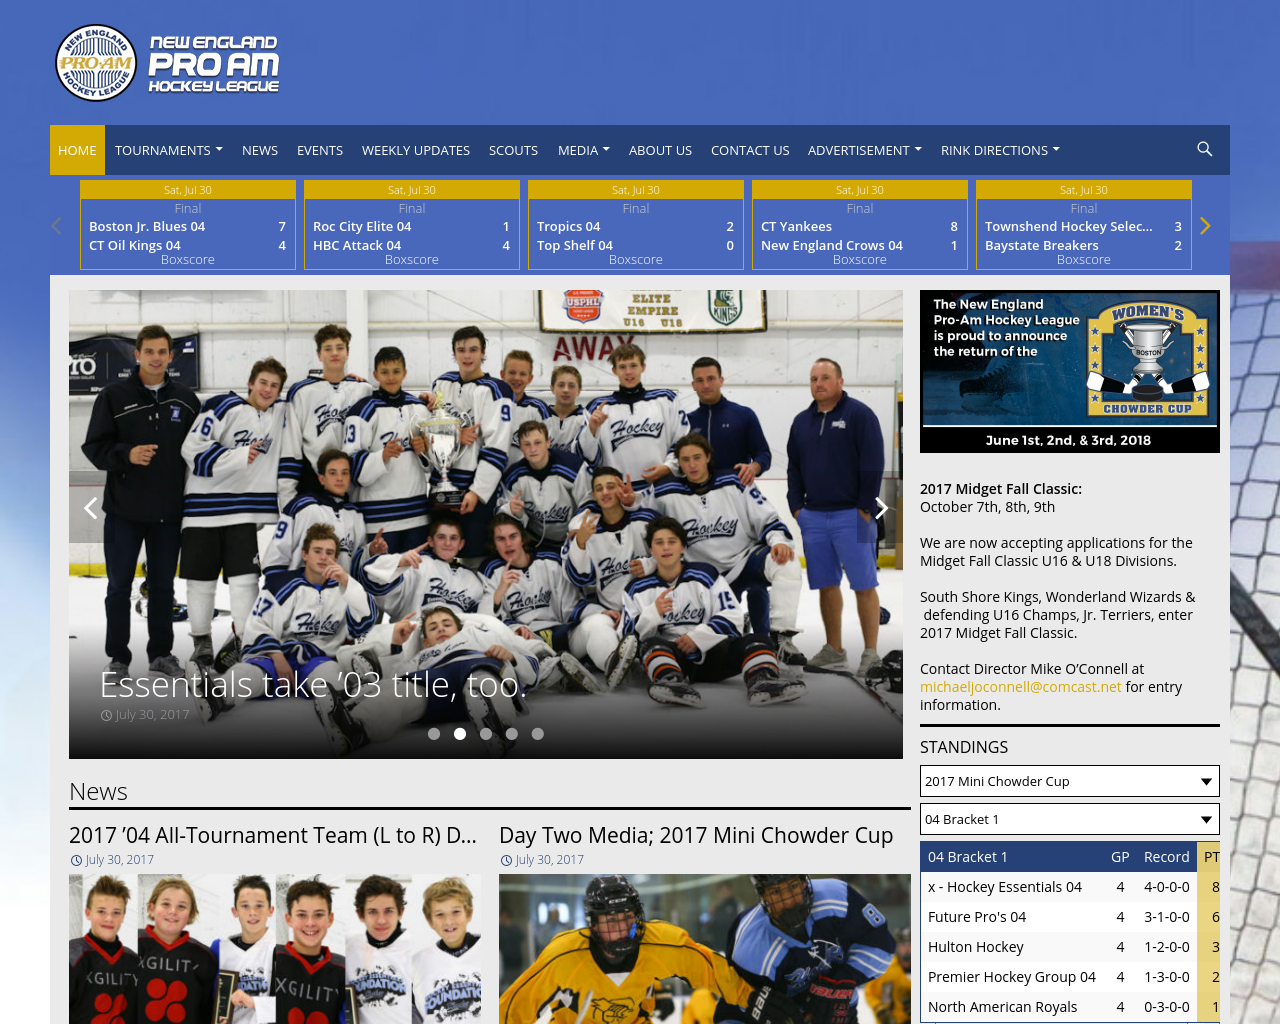 New-England-Pro-Am-Hockey-League-Advertising-Reviews-Pricing